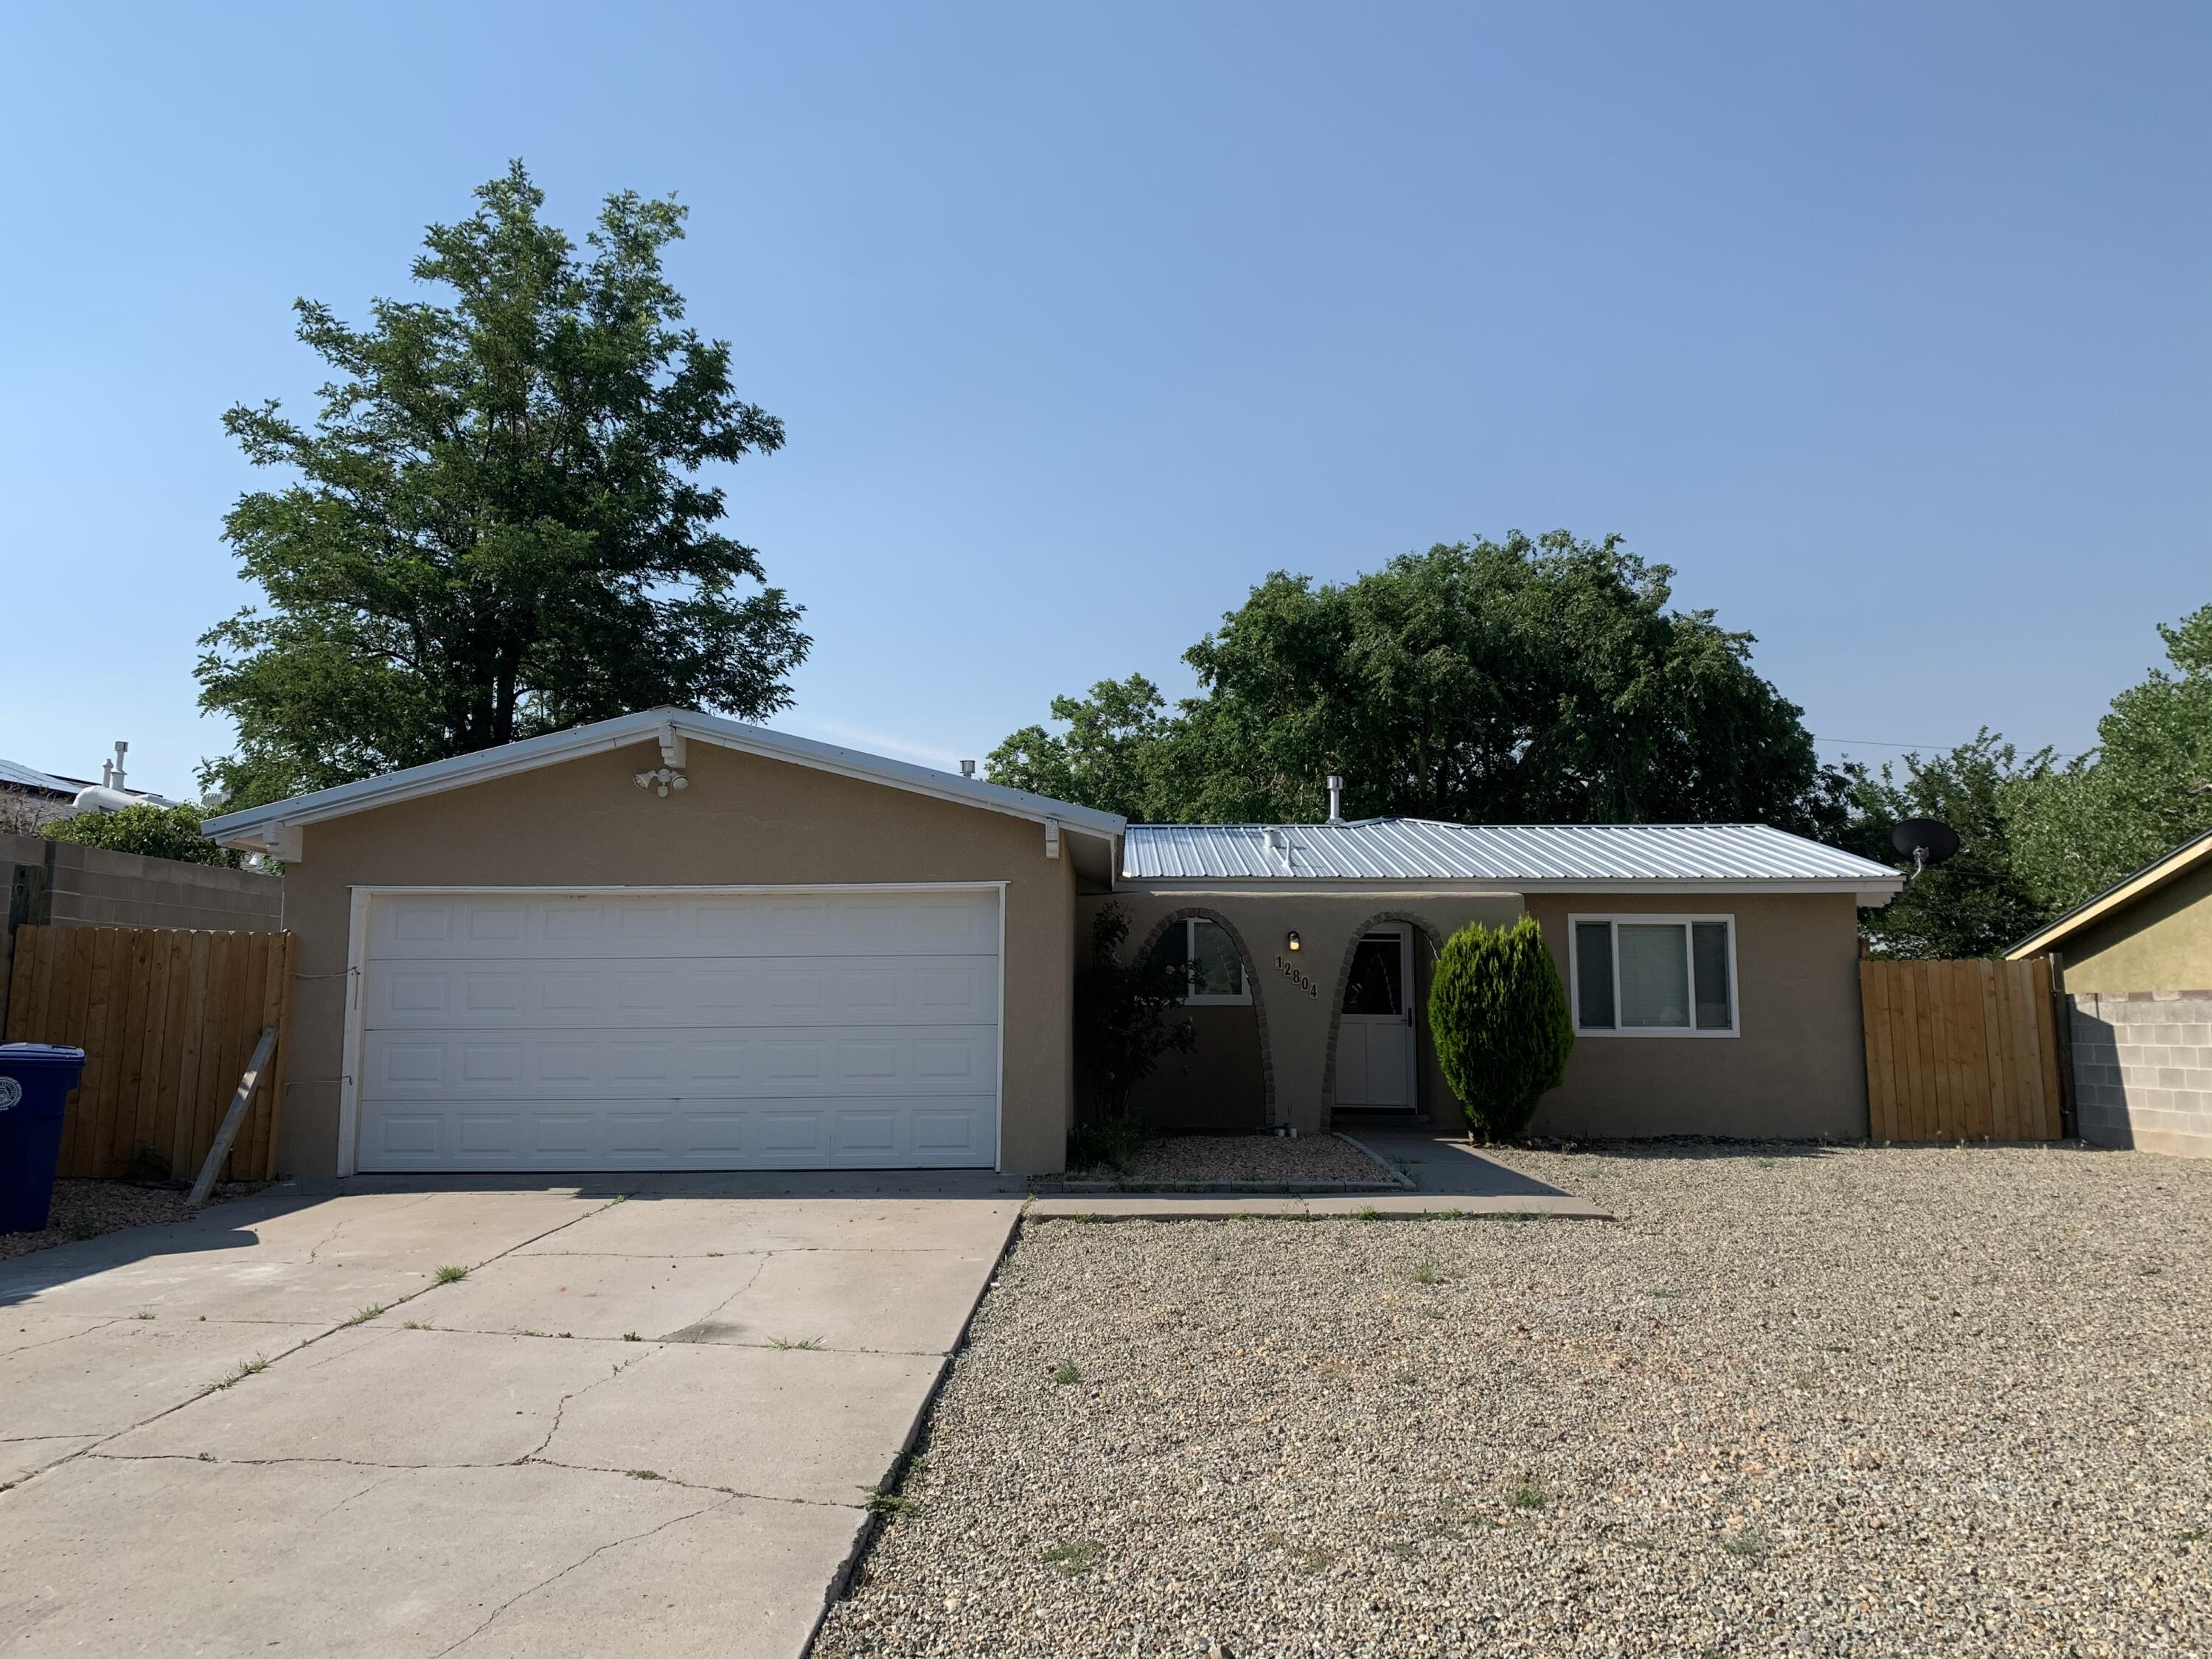 Move in ready in the NE Heights.  Single Story, 3 bedroom, 1.75/ba, 2 Car Garage with 2 living areas.  Just over 2 year old Metal roof and HWH. Nicely landscaped F&B yards.   All appliances stay including W/D.  Located directly across the street from Bianchetti Park.